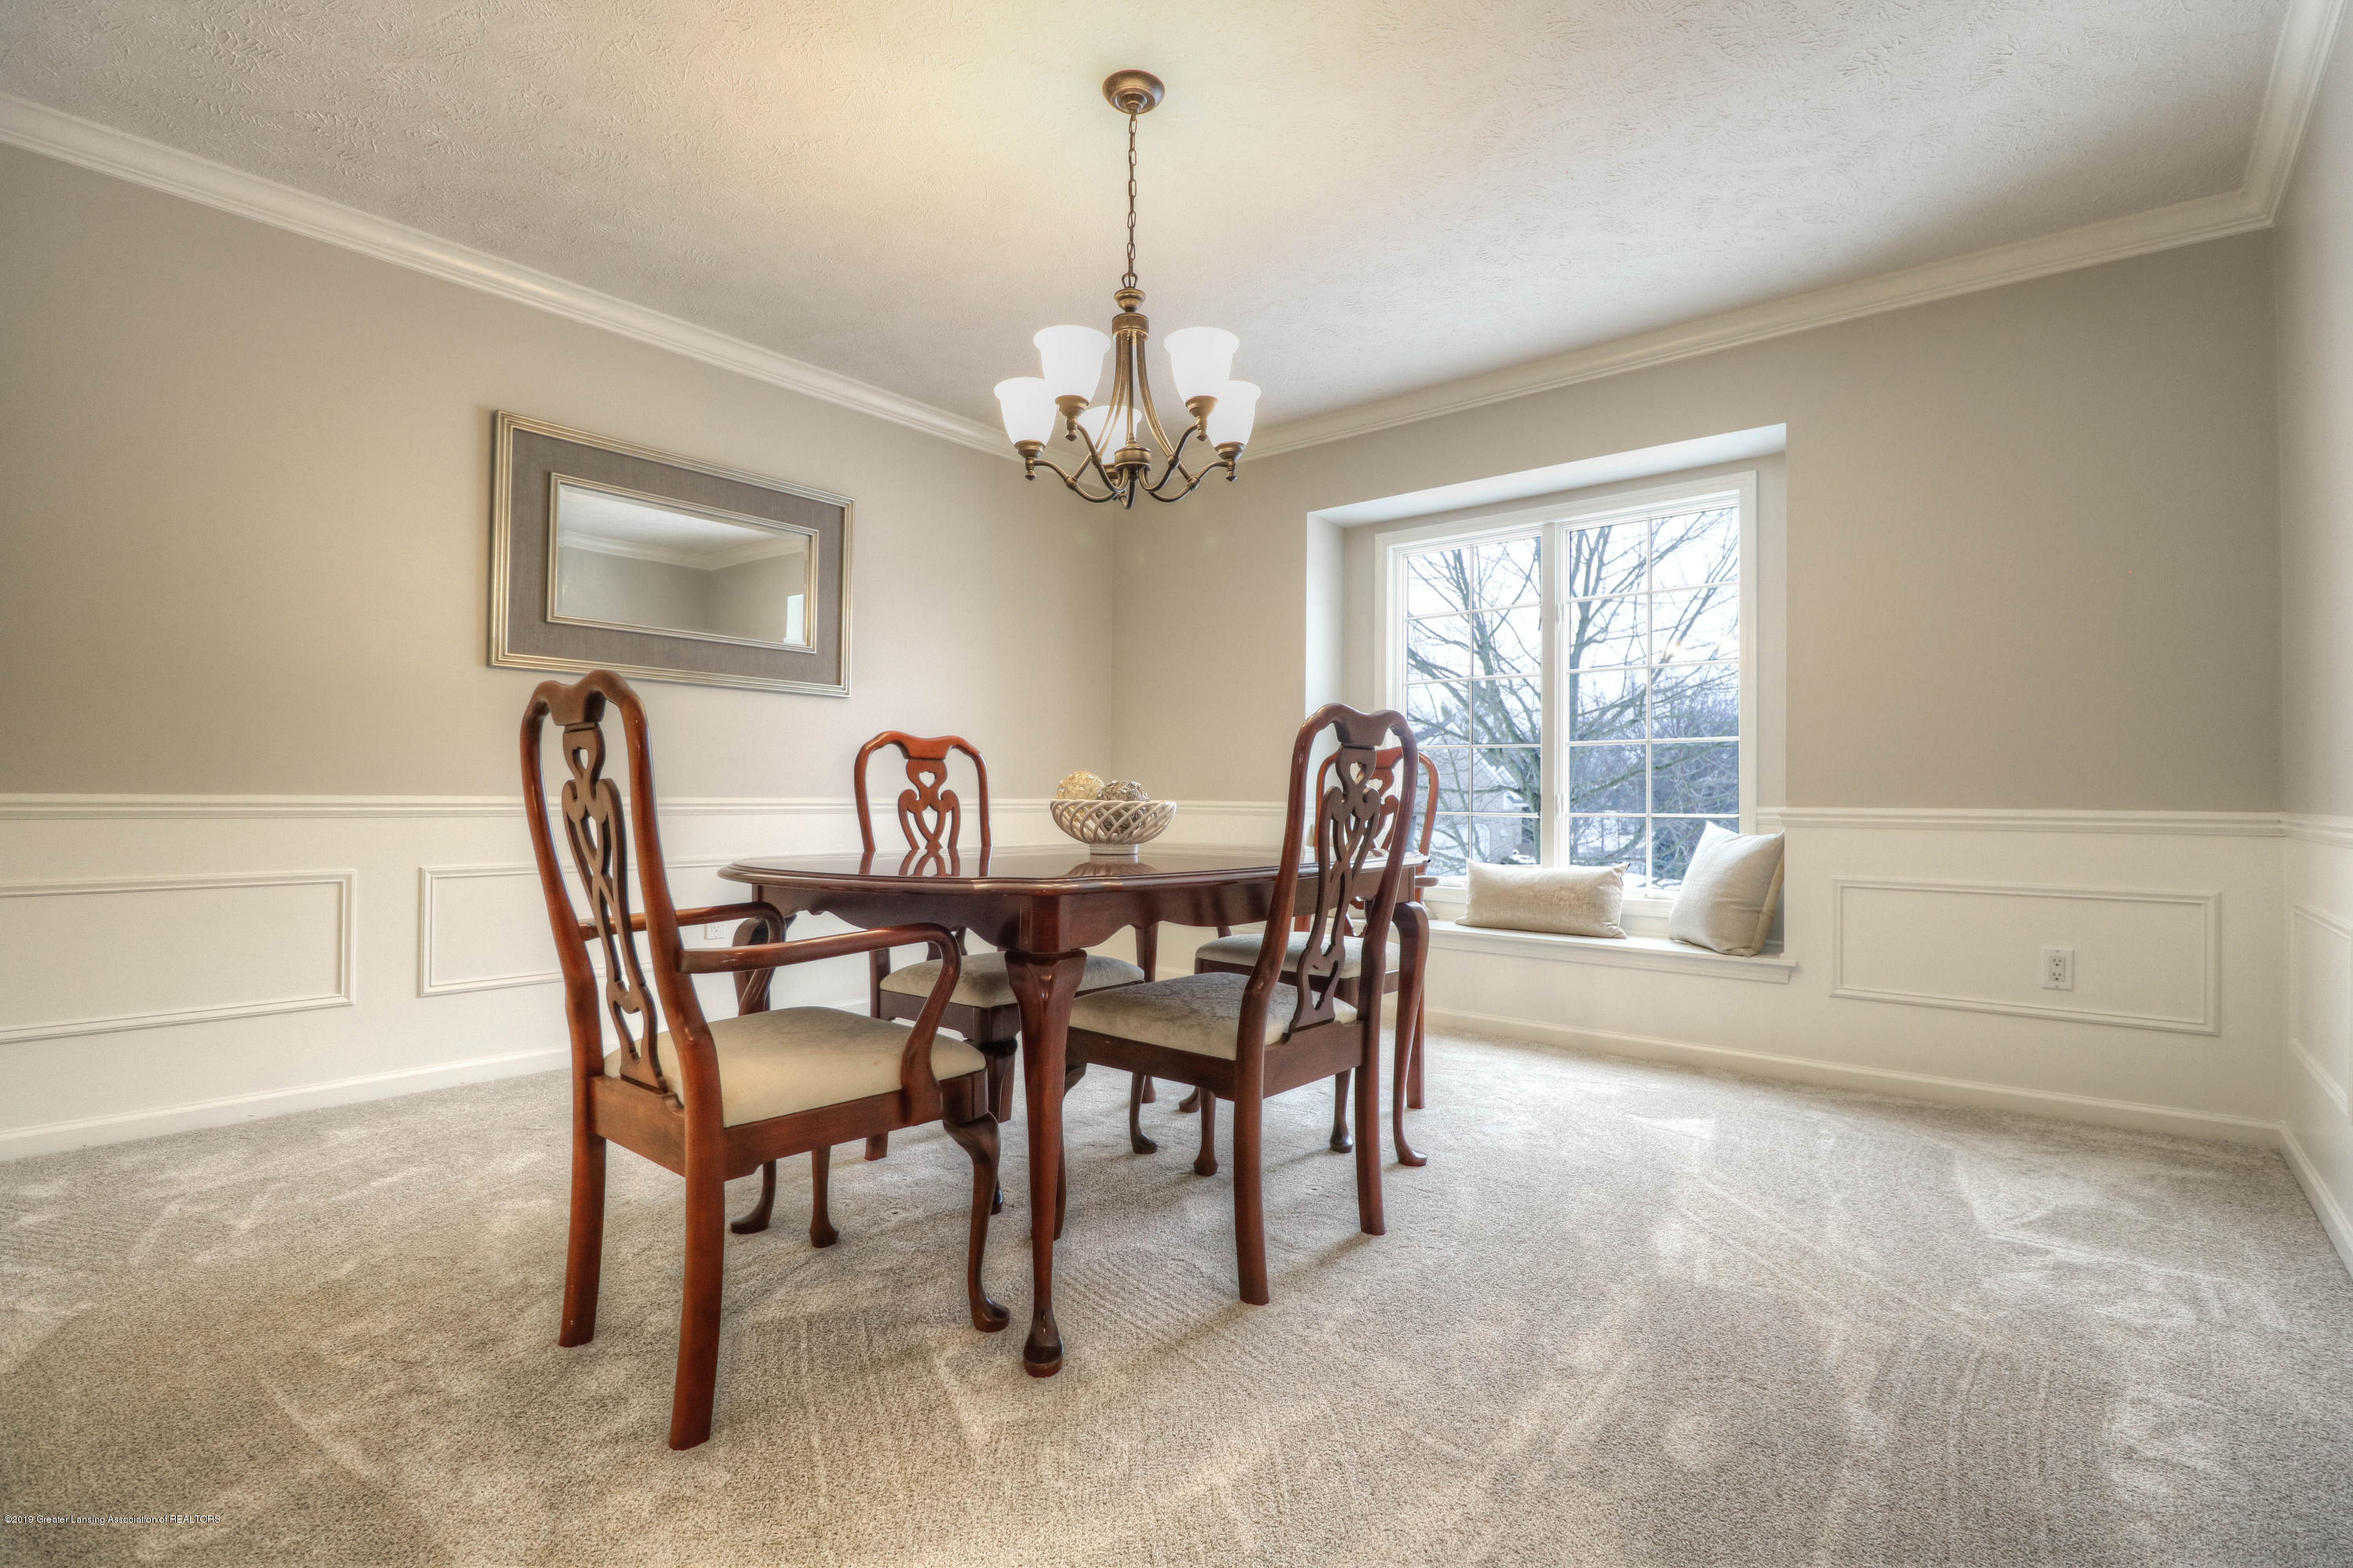 804 Sunrise Cir - Formal Dining Room - 15